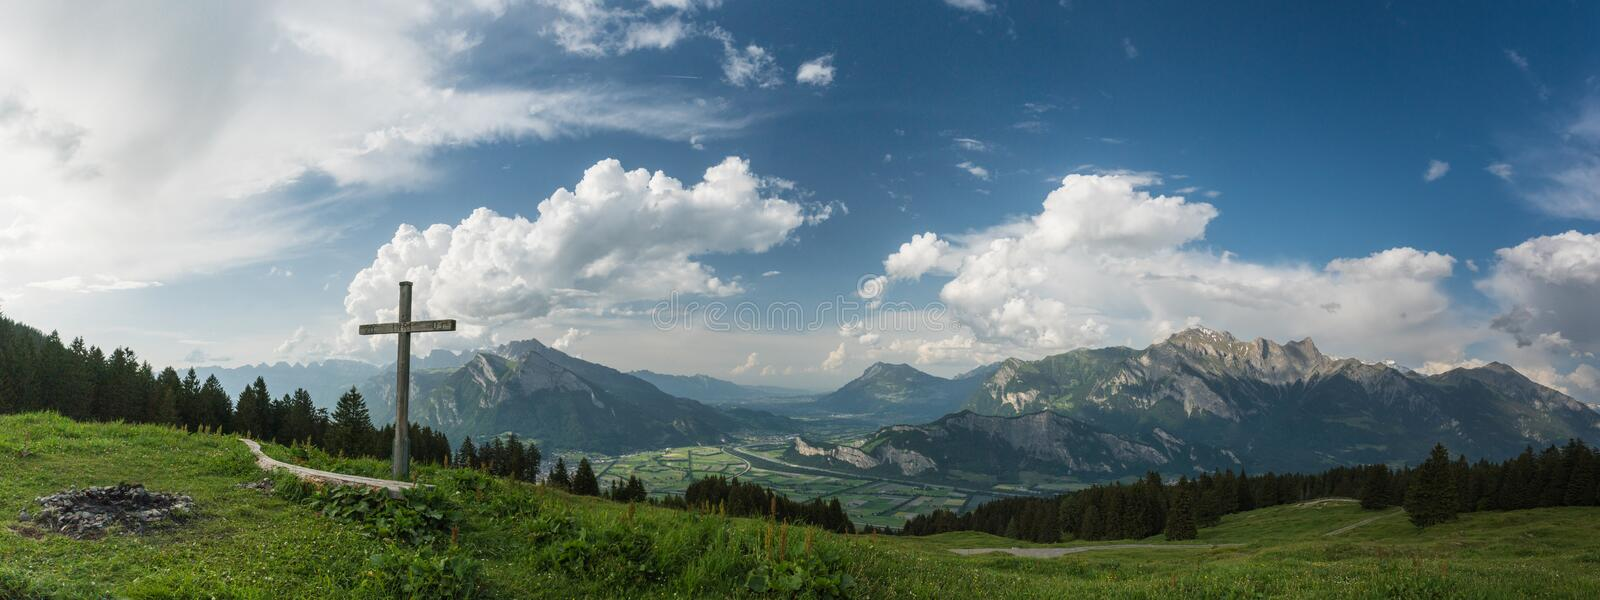 Mountain panorama with a gorgeous view of the Swiss Alps and Valleys and a summit cross stock photos